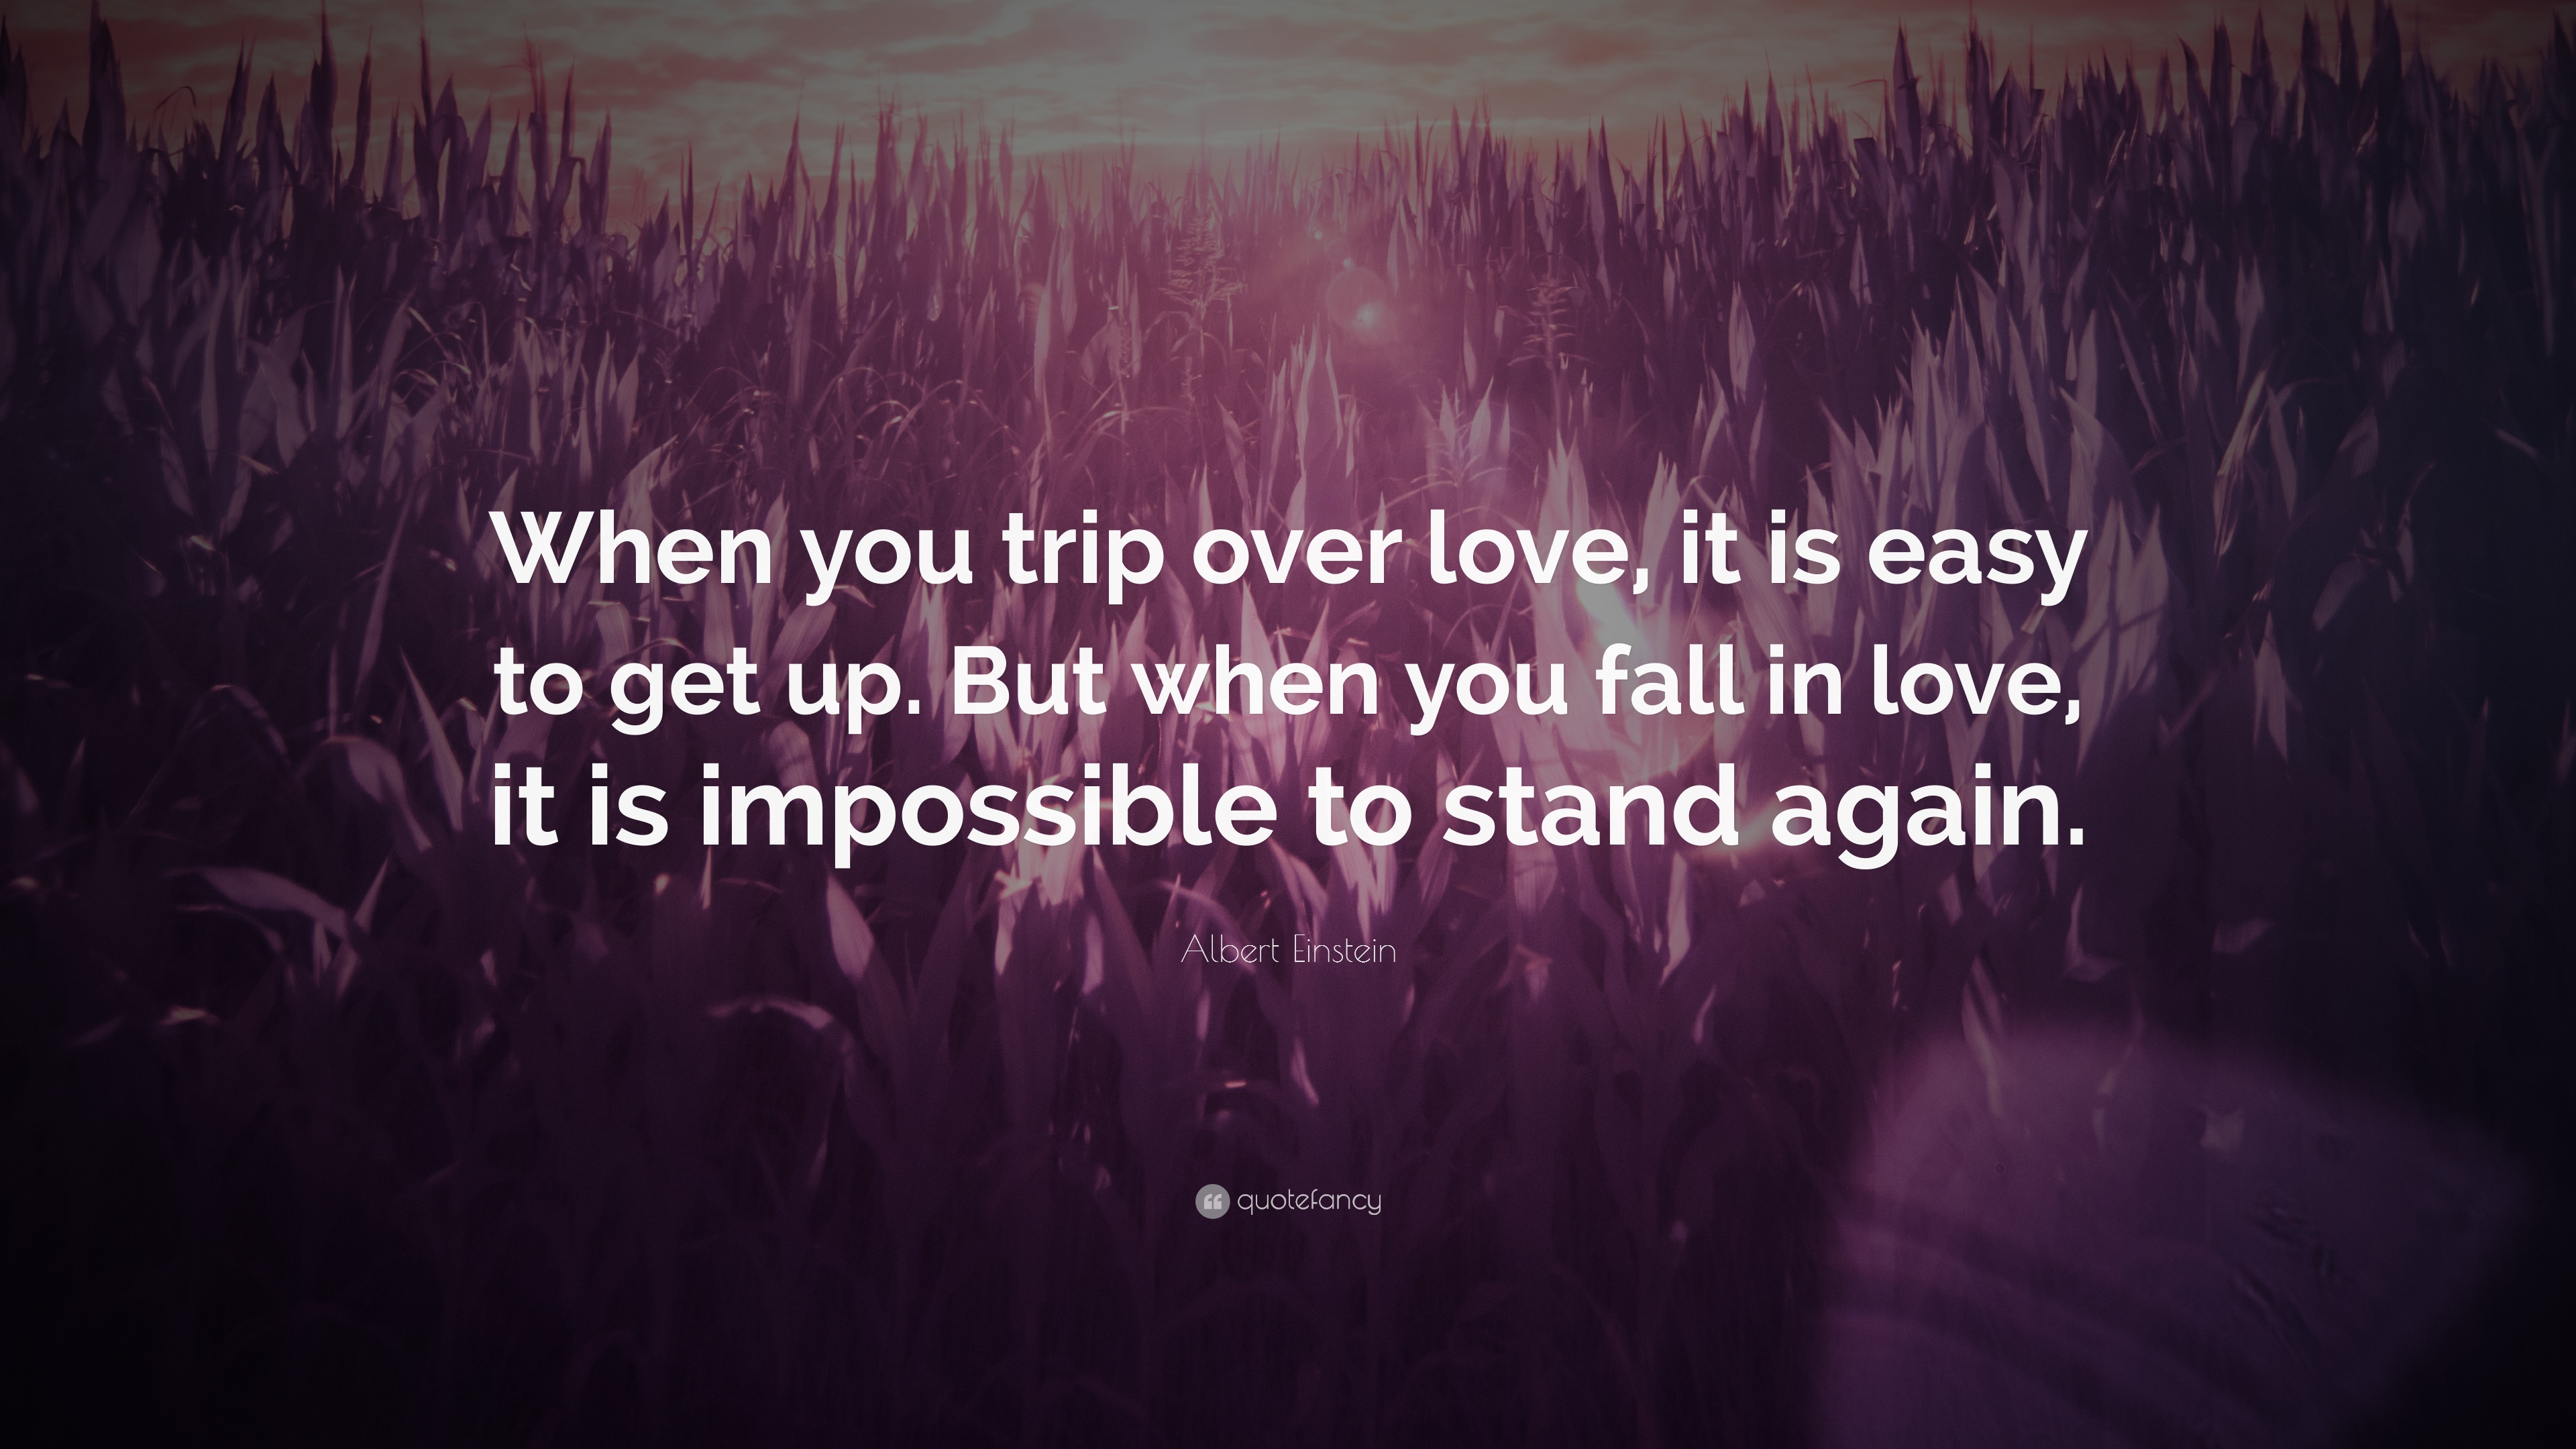 Love Quotes: U201cWhen You Trip Over Love, It Is Easy To Get Up